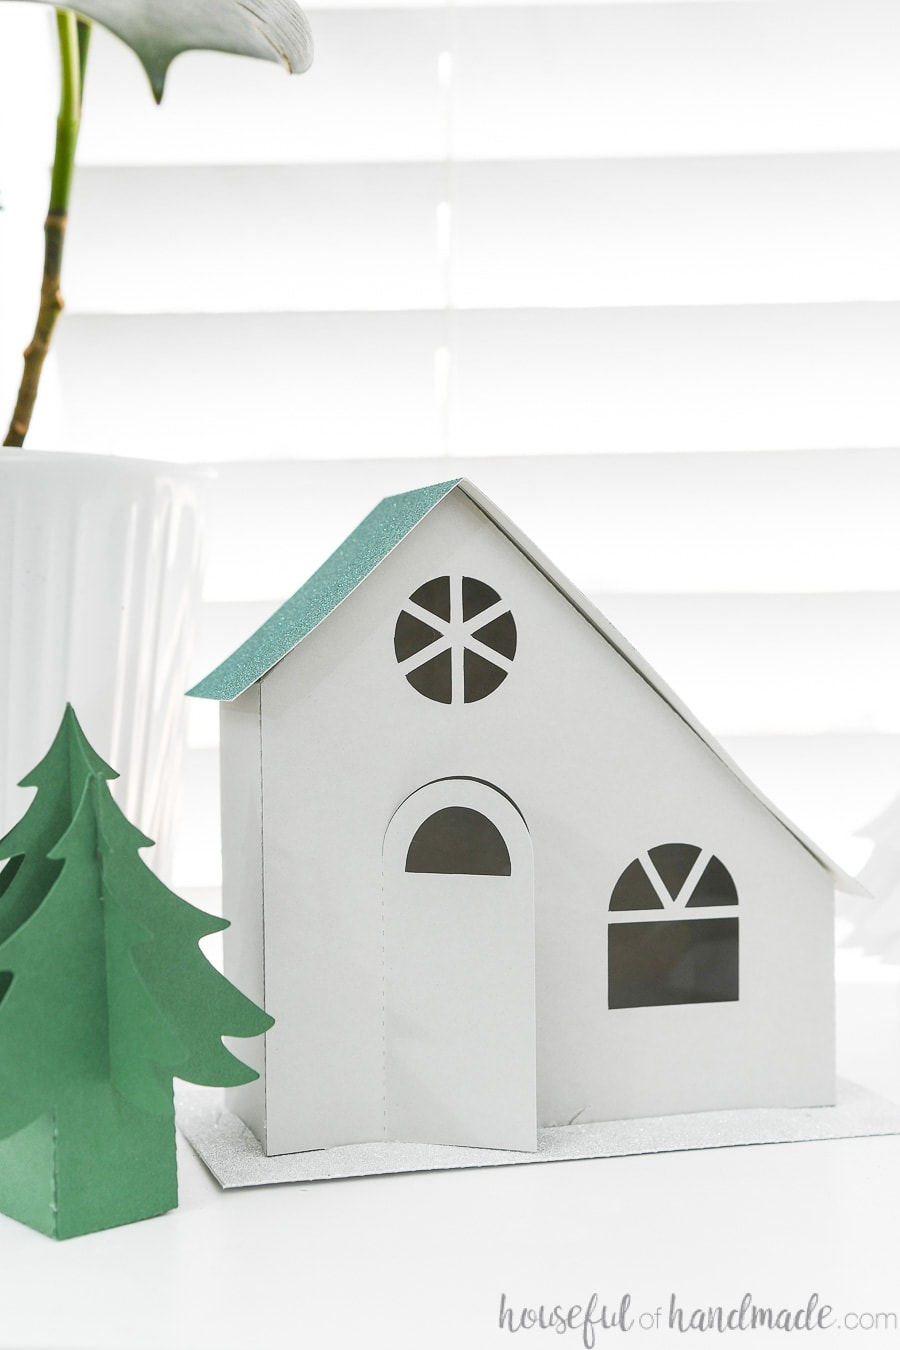 Close up of the gray modern paper house with asymmetrical teal glitter roof.